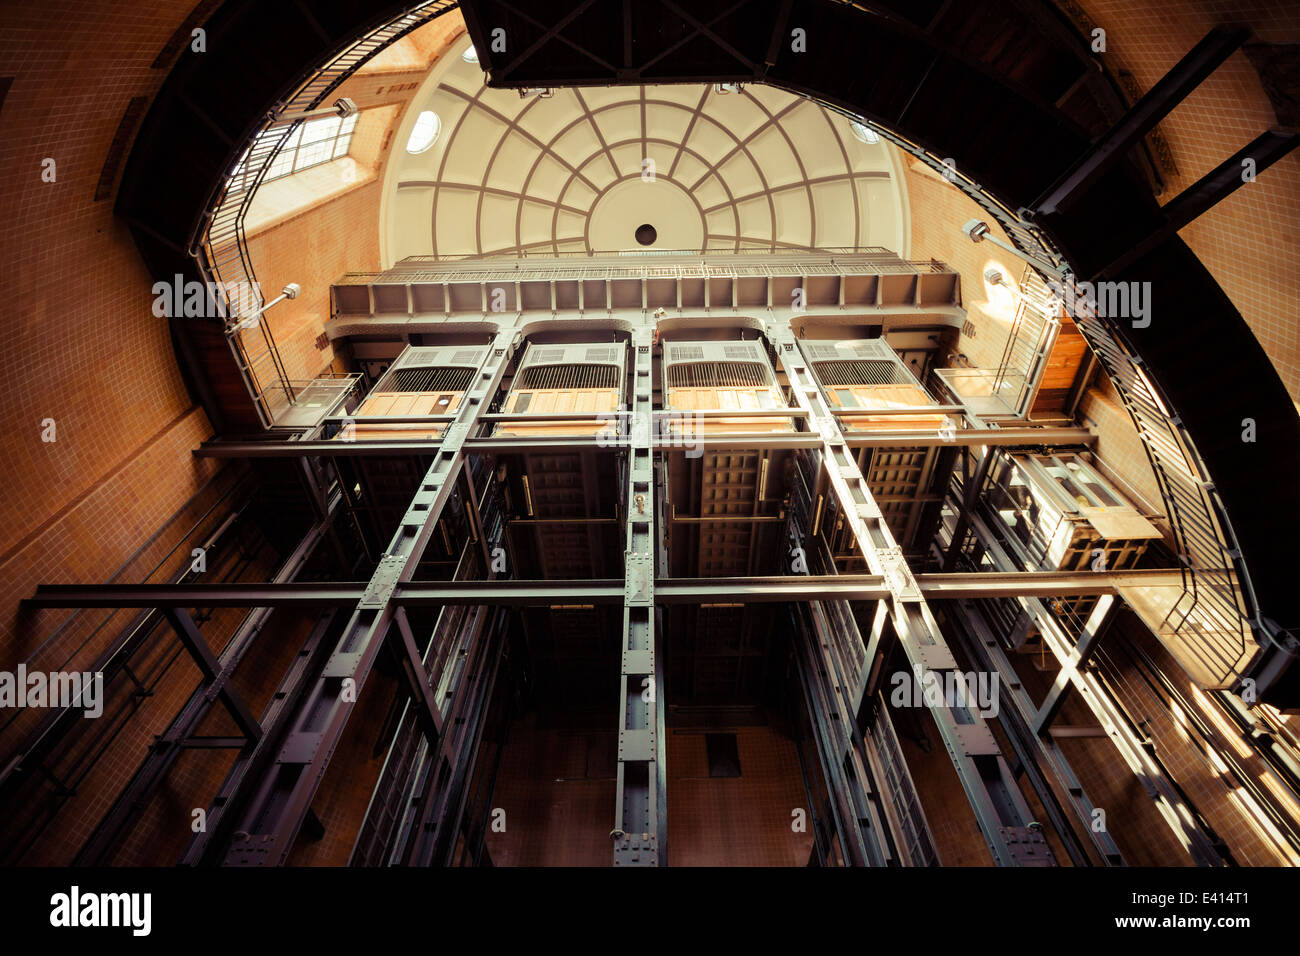 germany-hamburg-old-elbe-tunnel-st-pauli-elbe-tunnel-elevators-E414T1.jpg